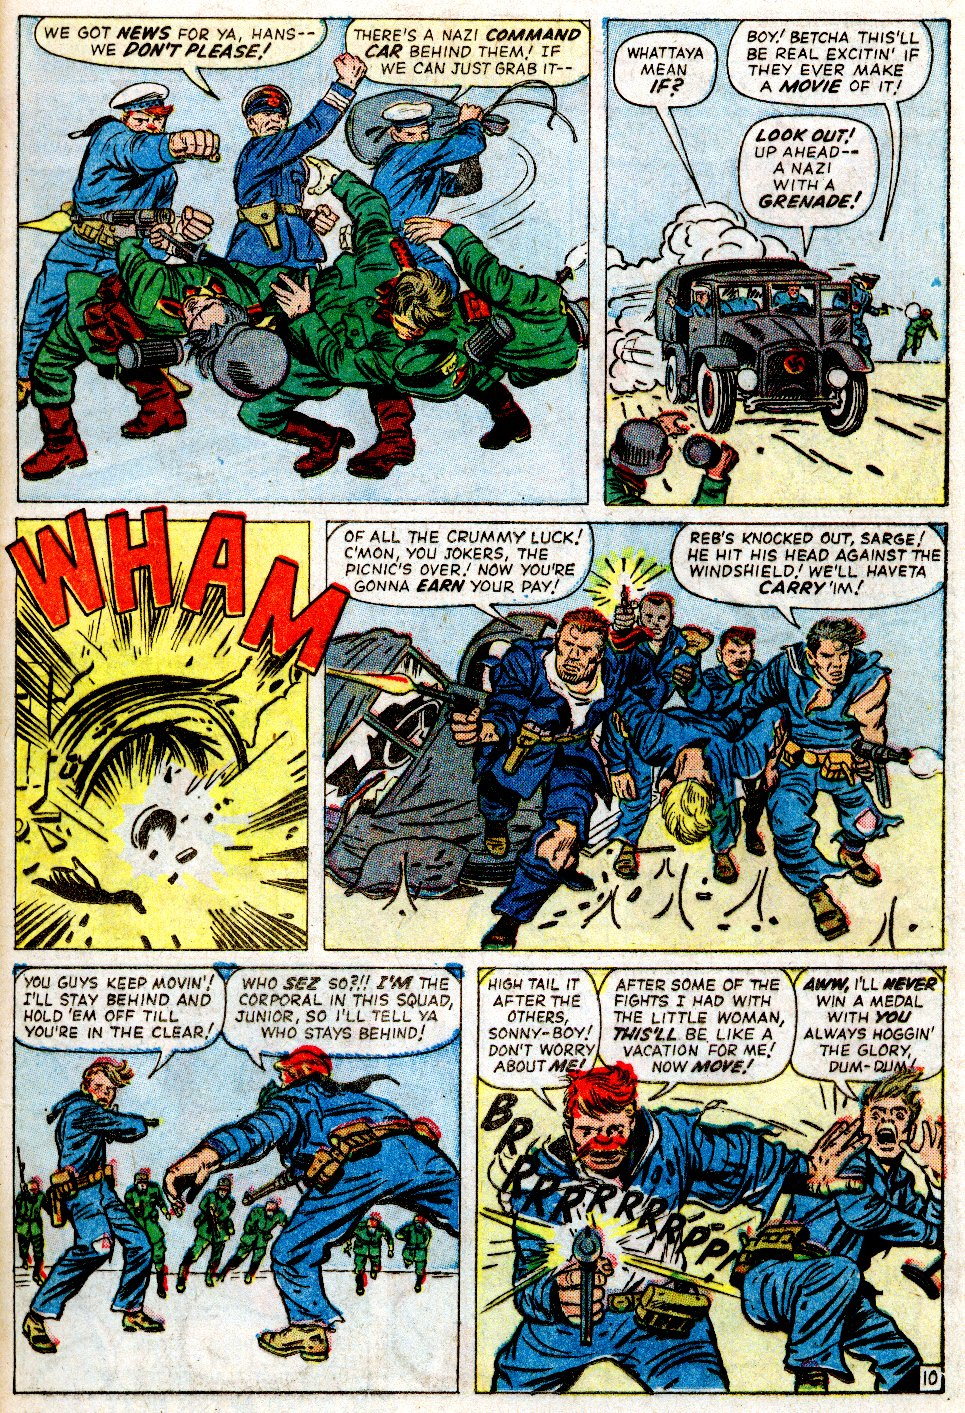 Read online Sgt. Fury comic -  Issue #2 - 13